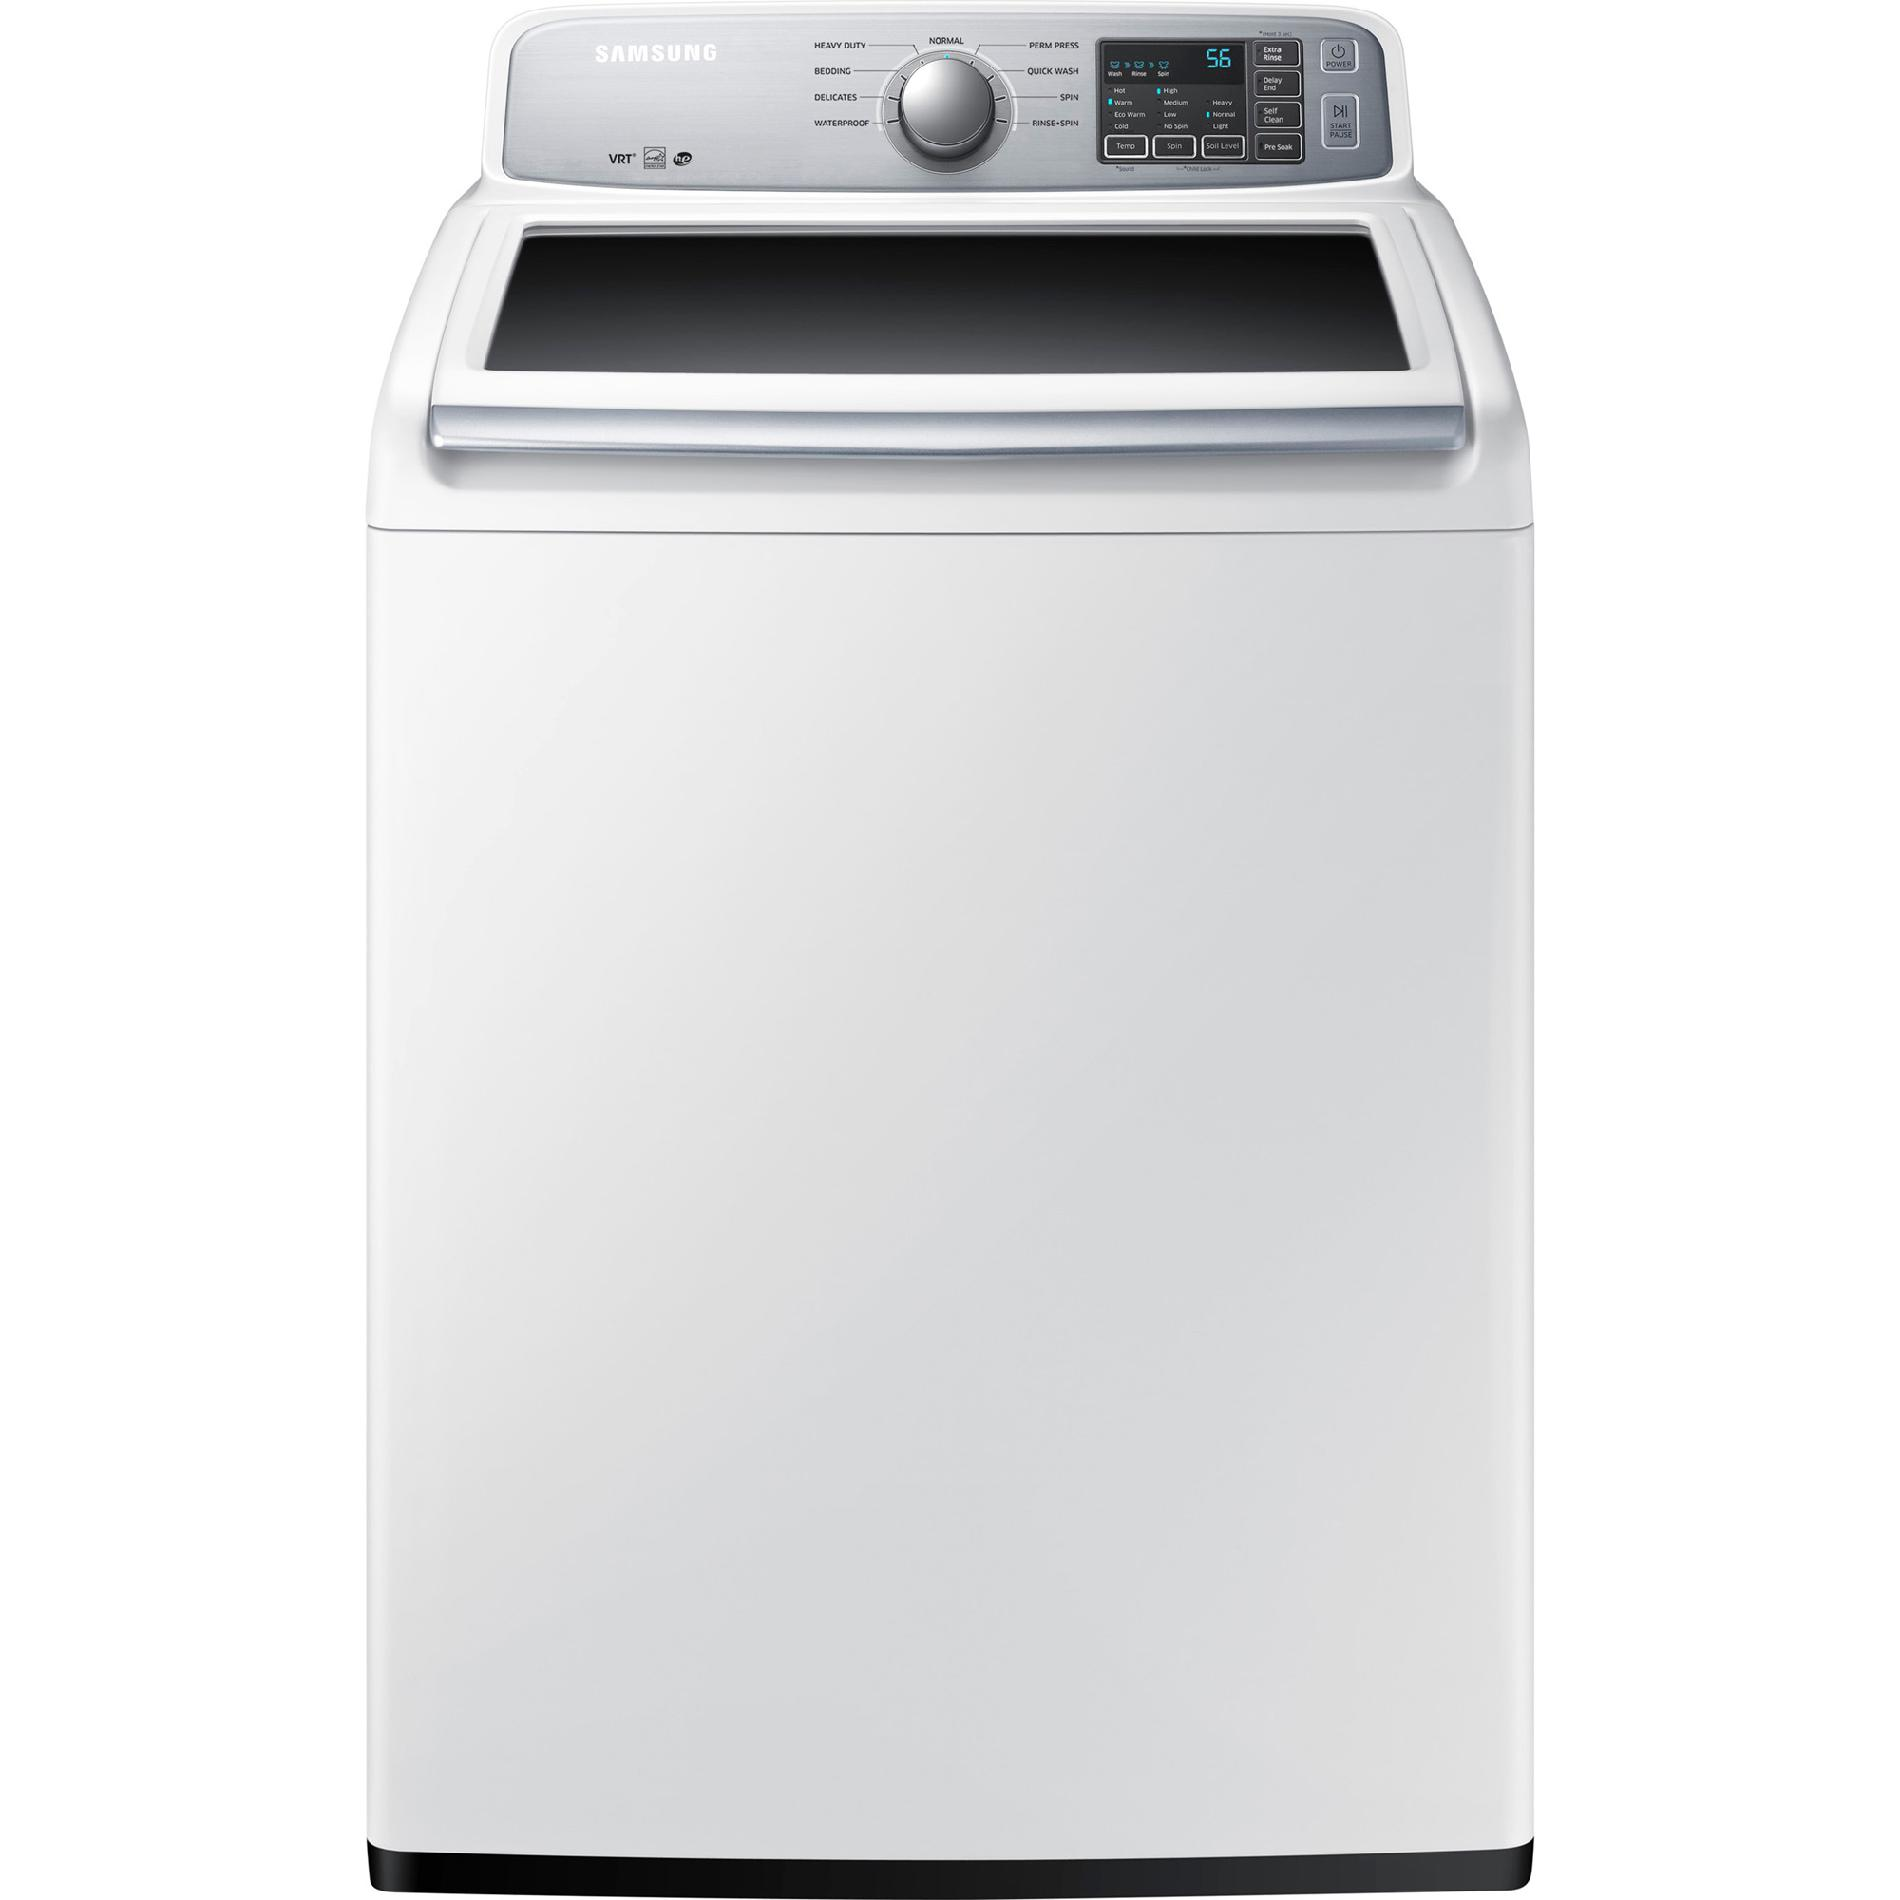 Samsung WA45H7000AW 4.5 cu. ft. Top-Load Washer - White PartNumber: 02636442000P KsnValue: 7279991 MfgPartNumber: WA45H7000AW